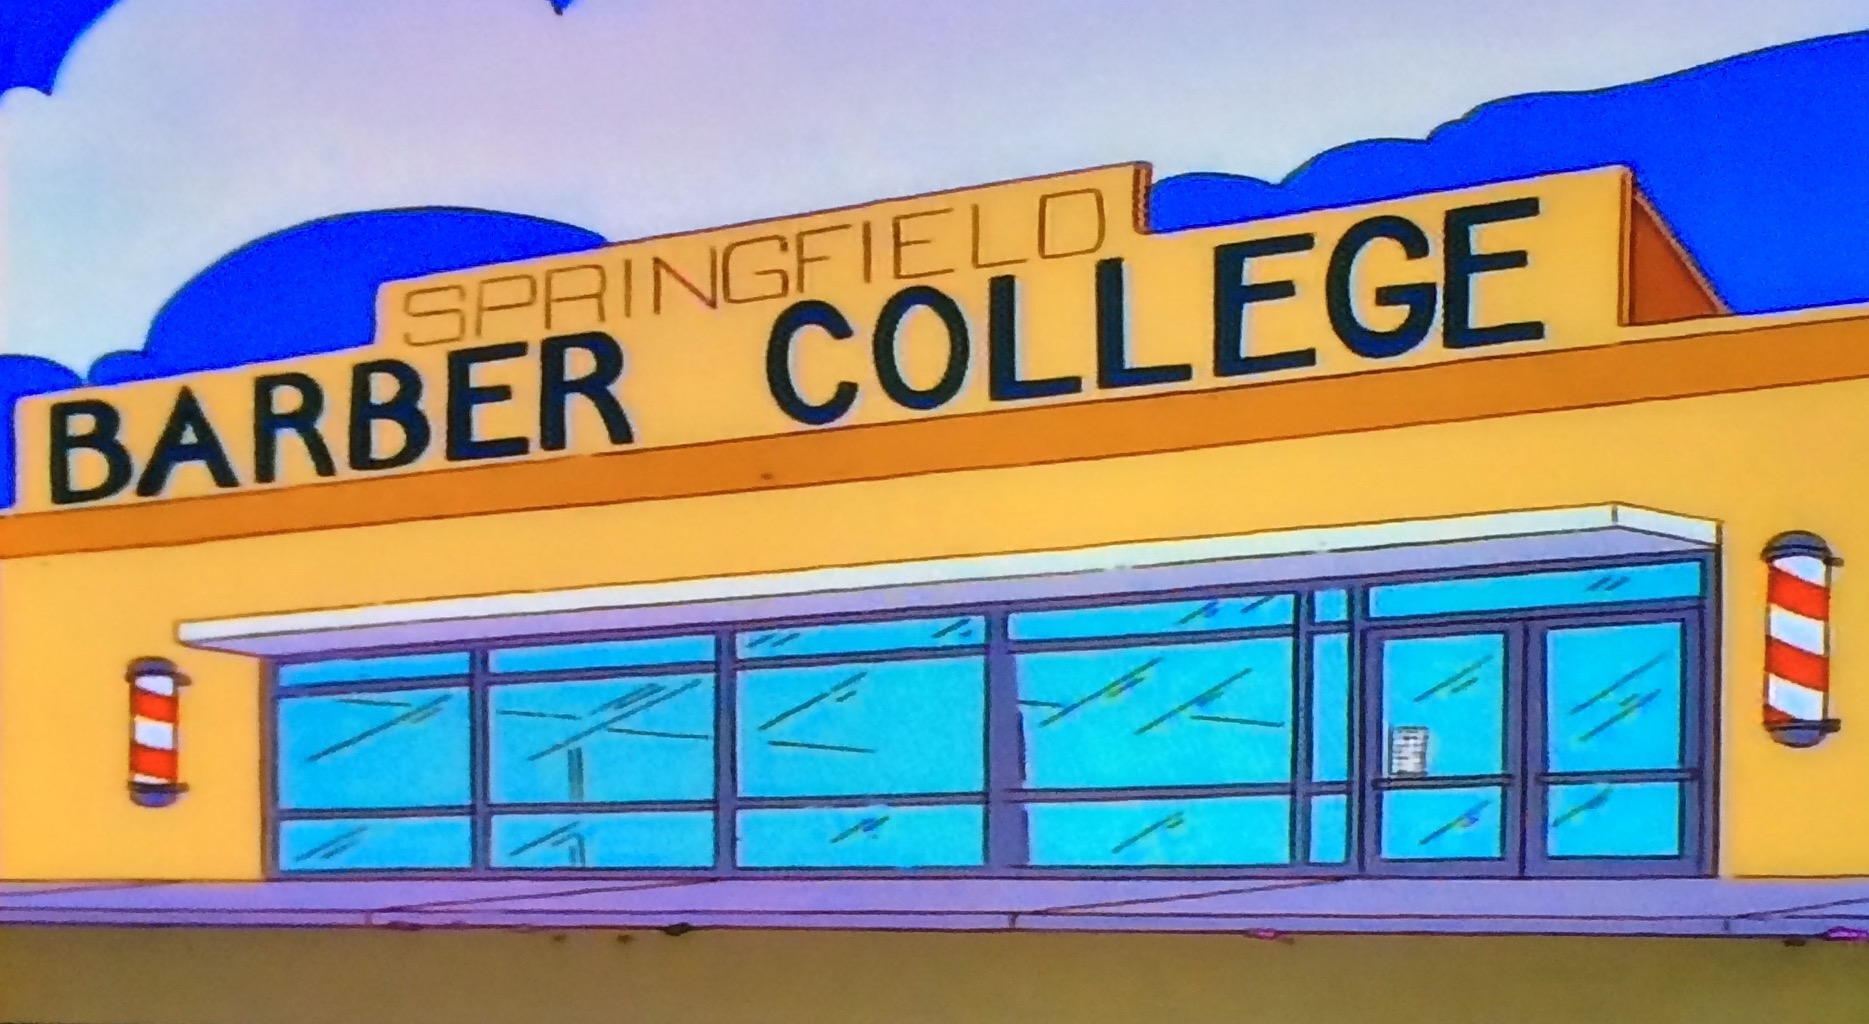 Springfield Barber College